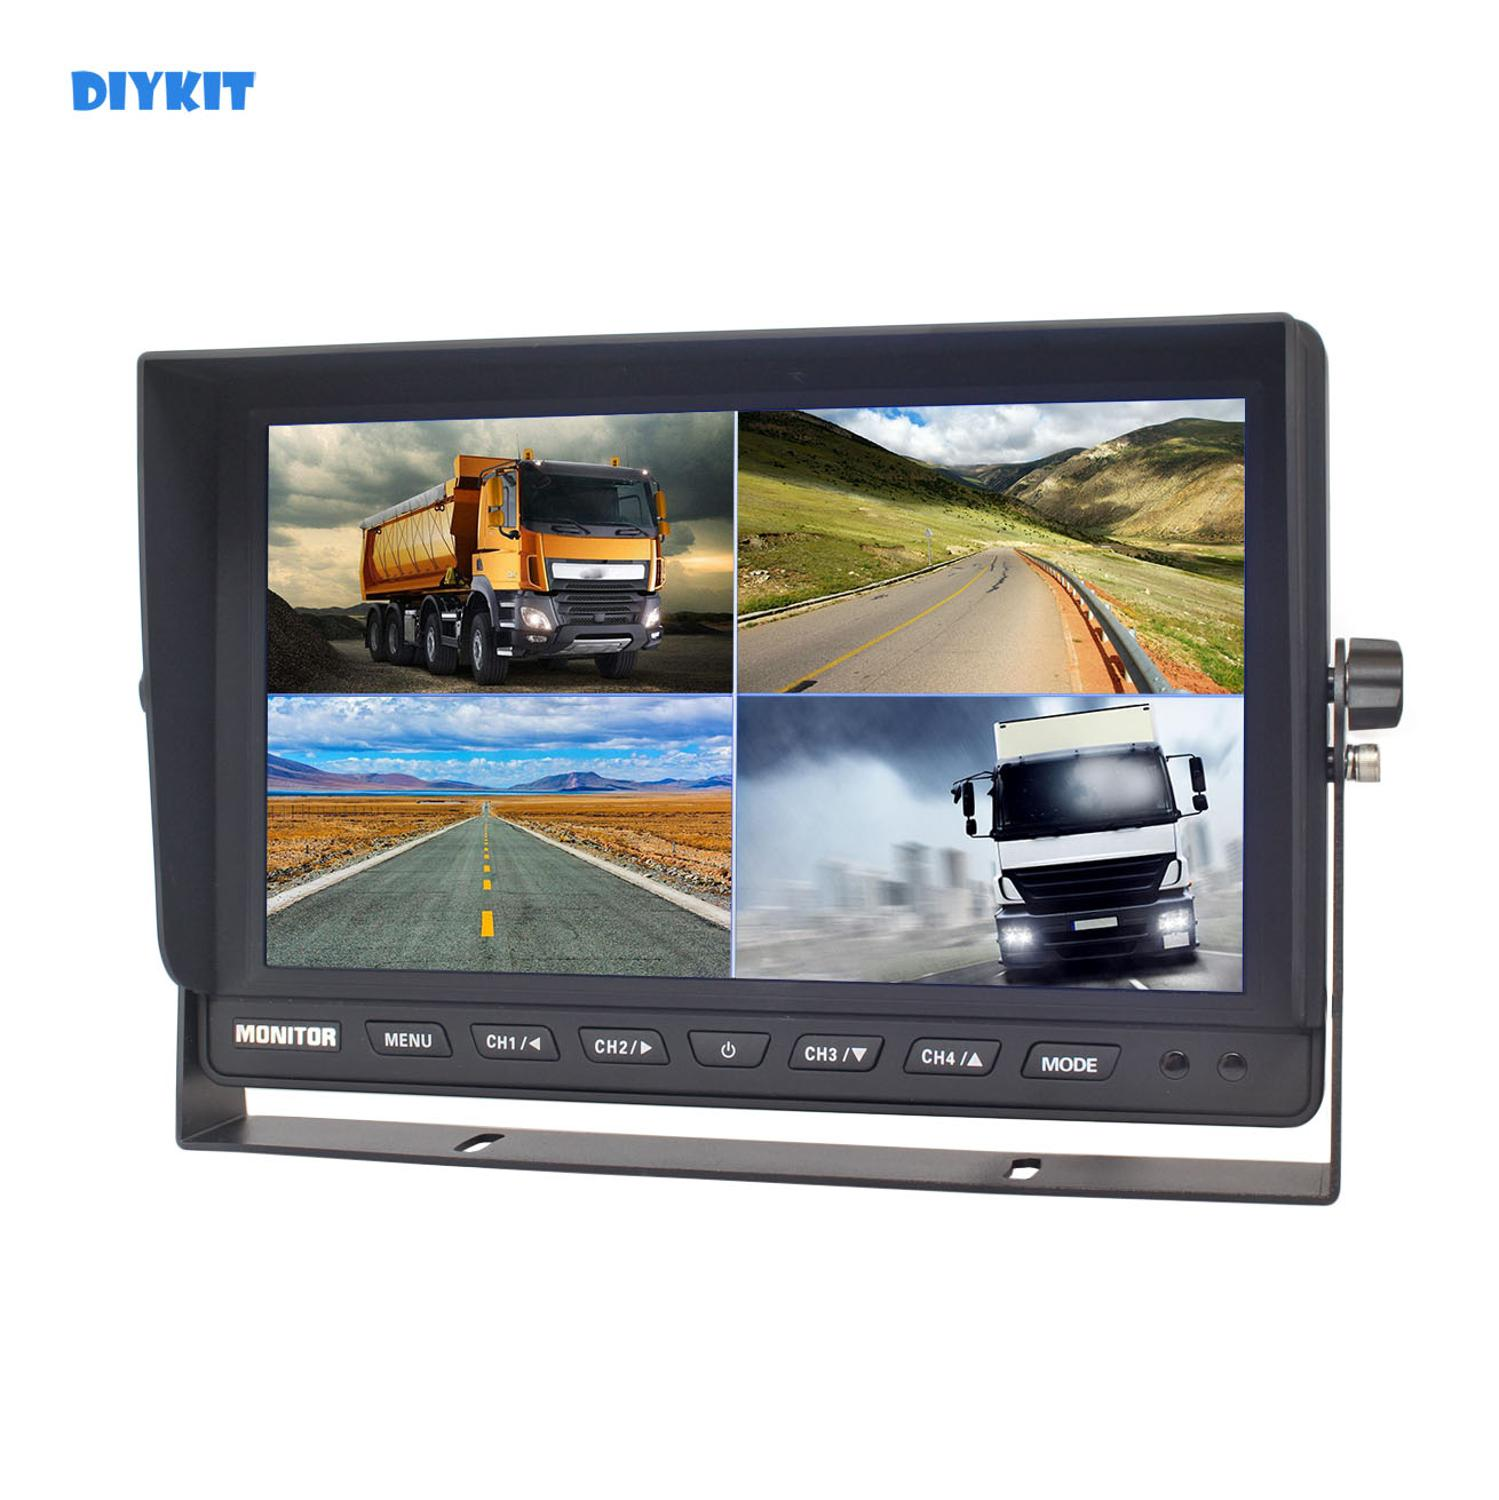 DIYKIT 10 Inch Split Quad Display Color Rear View Monitor Car Monitor for Car Truck Bus Reversing Cameracar monitor touchscreencar pc touch screen monitorcars monitor -